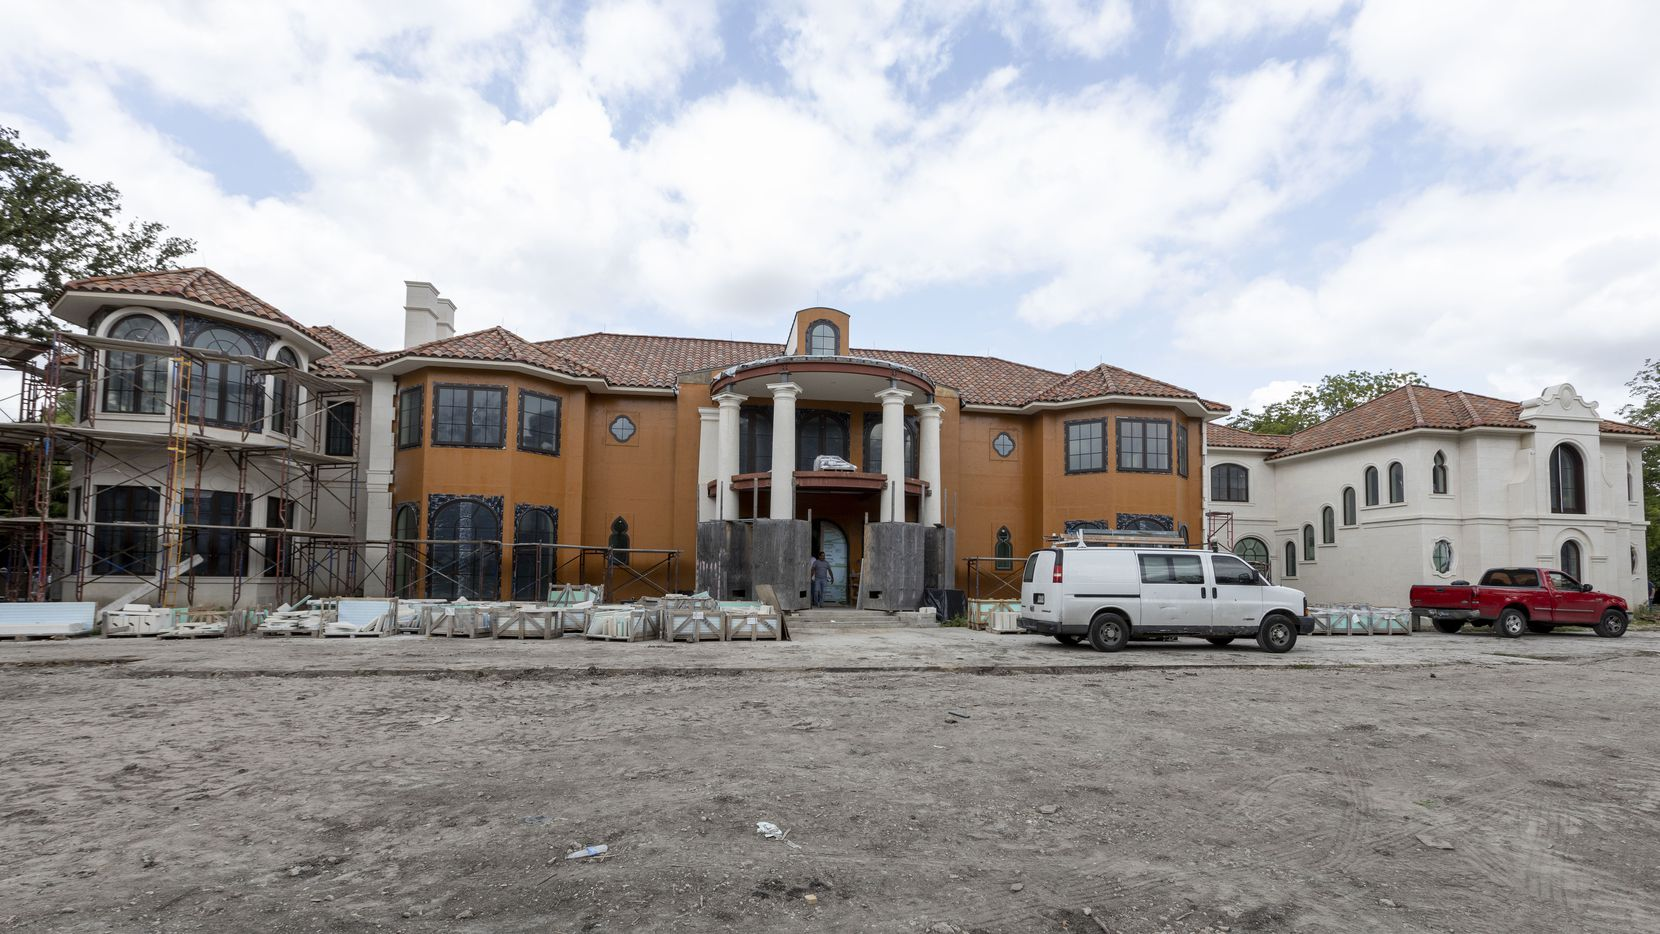 The home is shown under construction at 6915 Baltimore Drive on July 23 in University Park. The 23,688-square-foot home, designed by Richard Drummond Davis, is listed for sale with an asking price of $37.5 million.